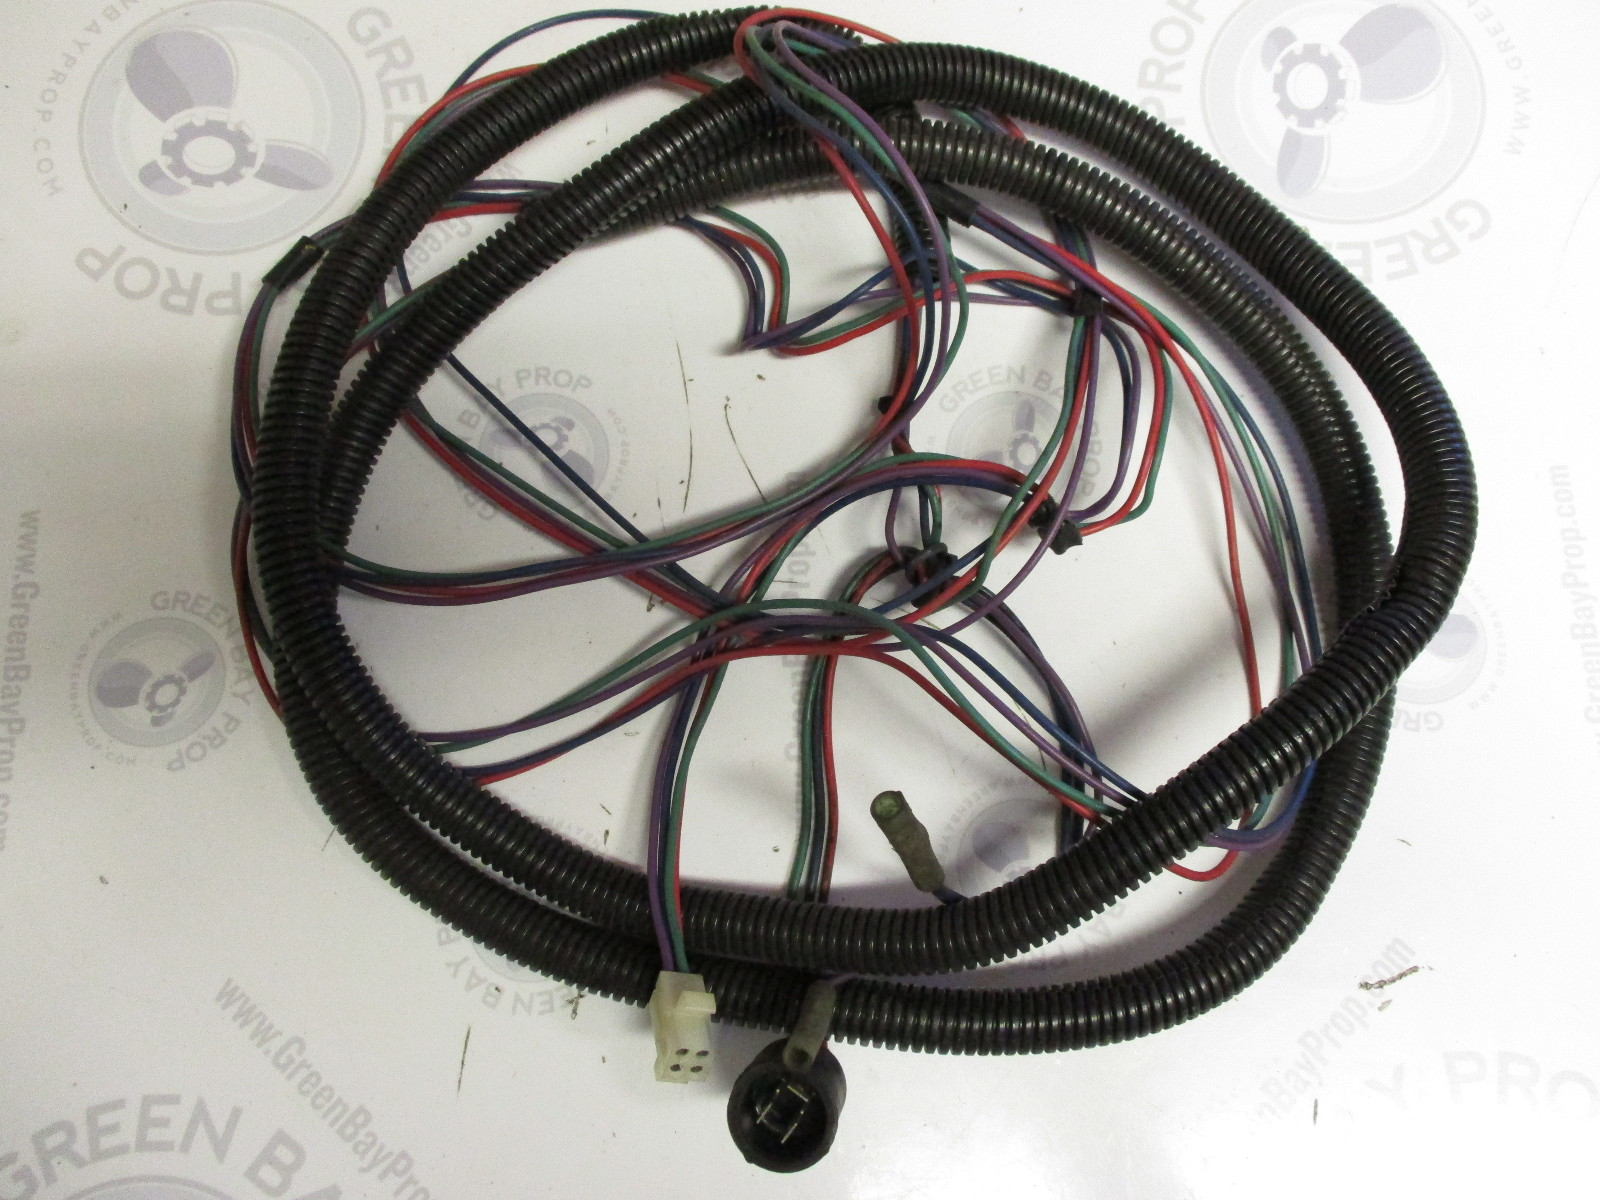 16 Ft Trim/Tilt Wire Harness for Mercruiser 4.3L Alpha One Gen II  Mpi Wiring Harness on